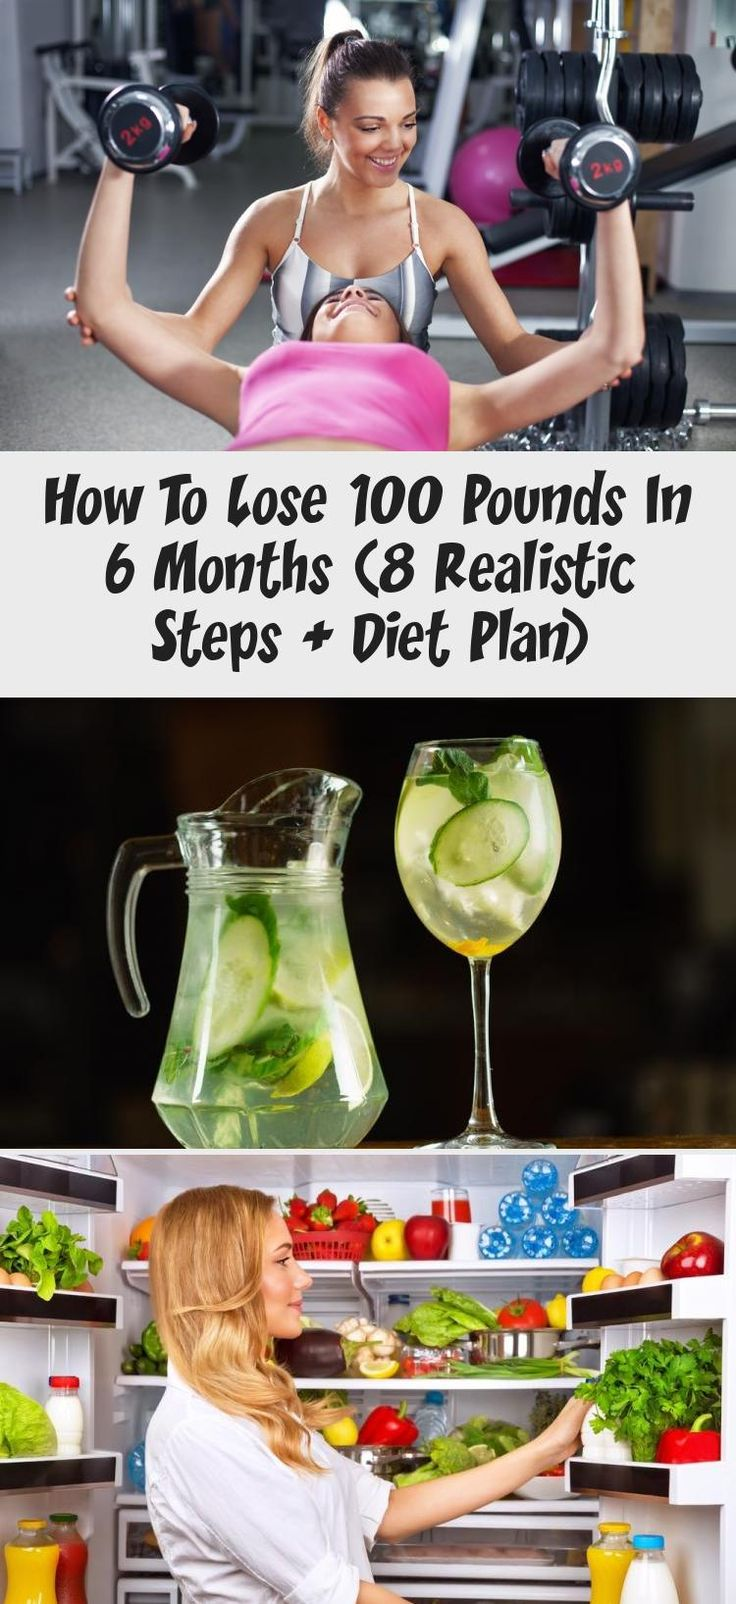 How to lose 100 pounds in 6 months 8 realistic steps